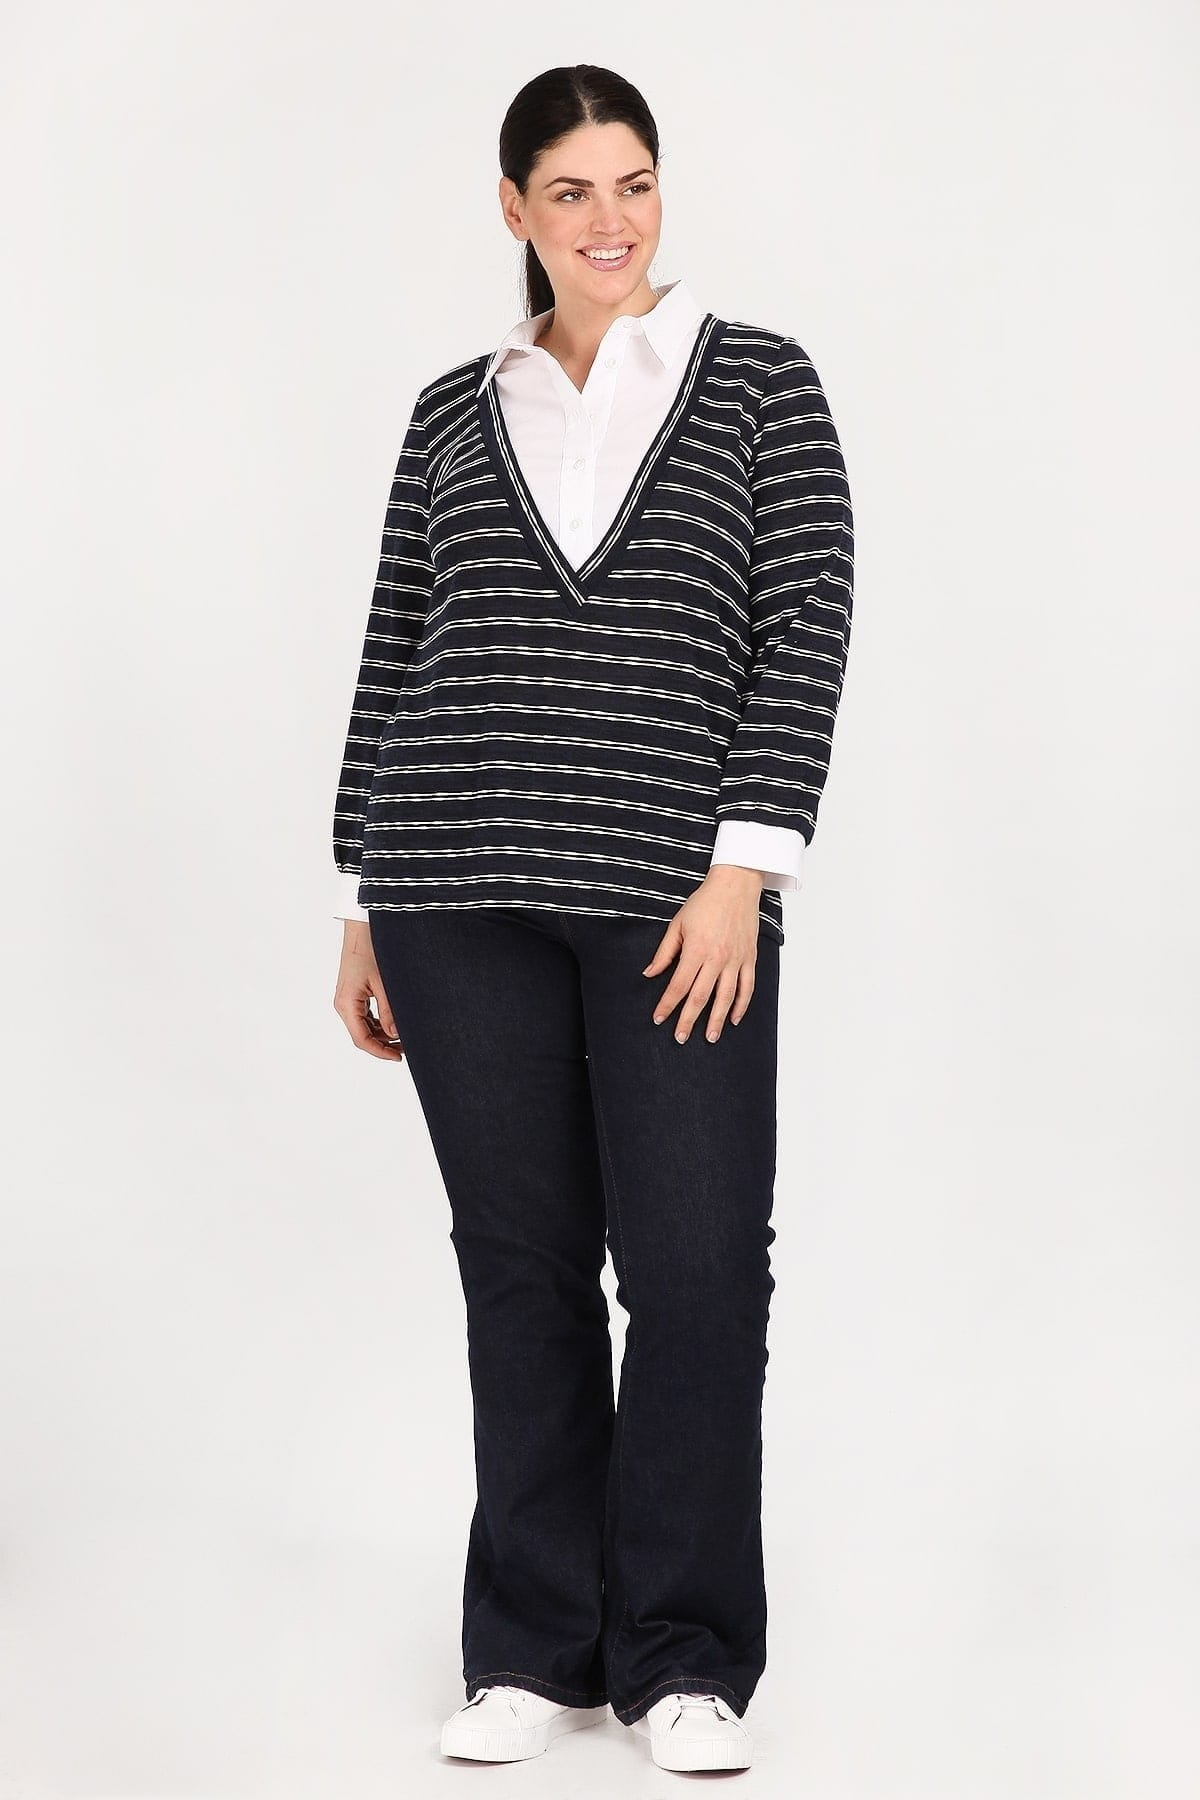 Knit striped blouse with shirt details